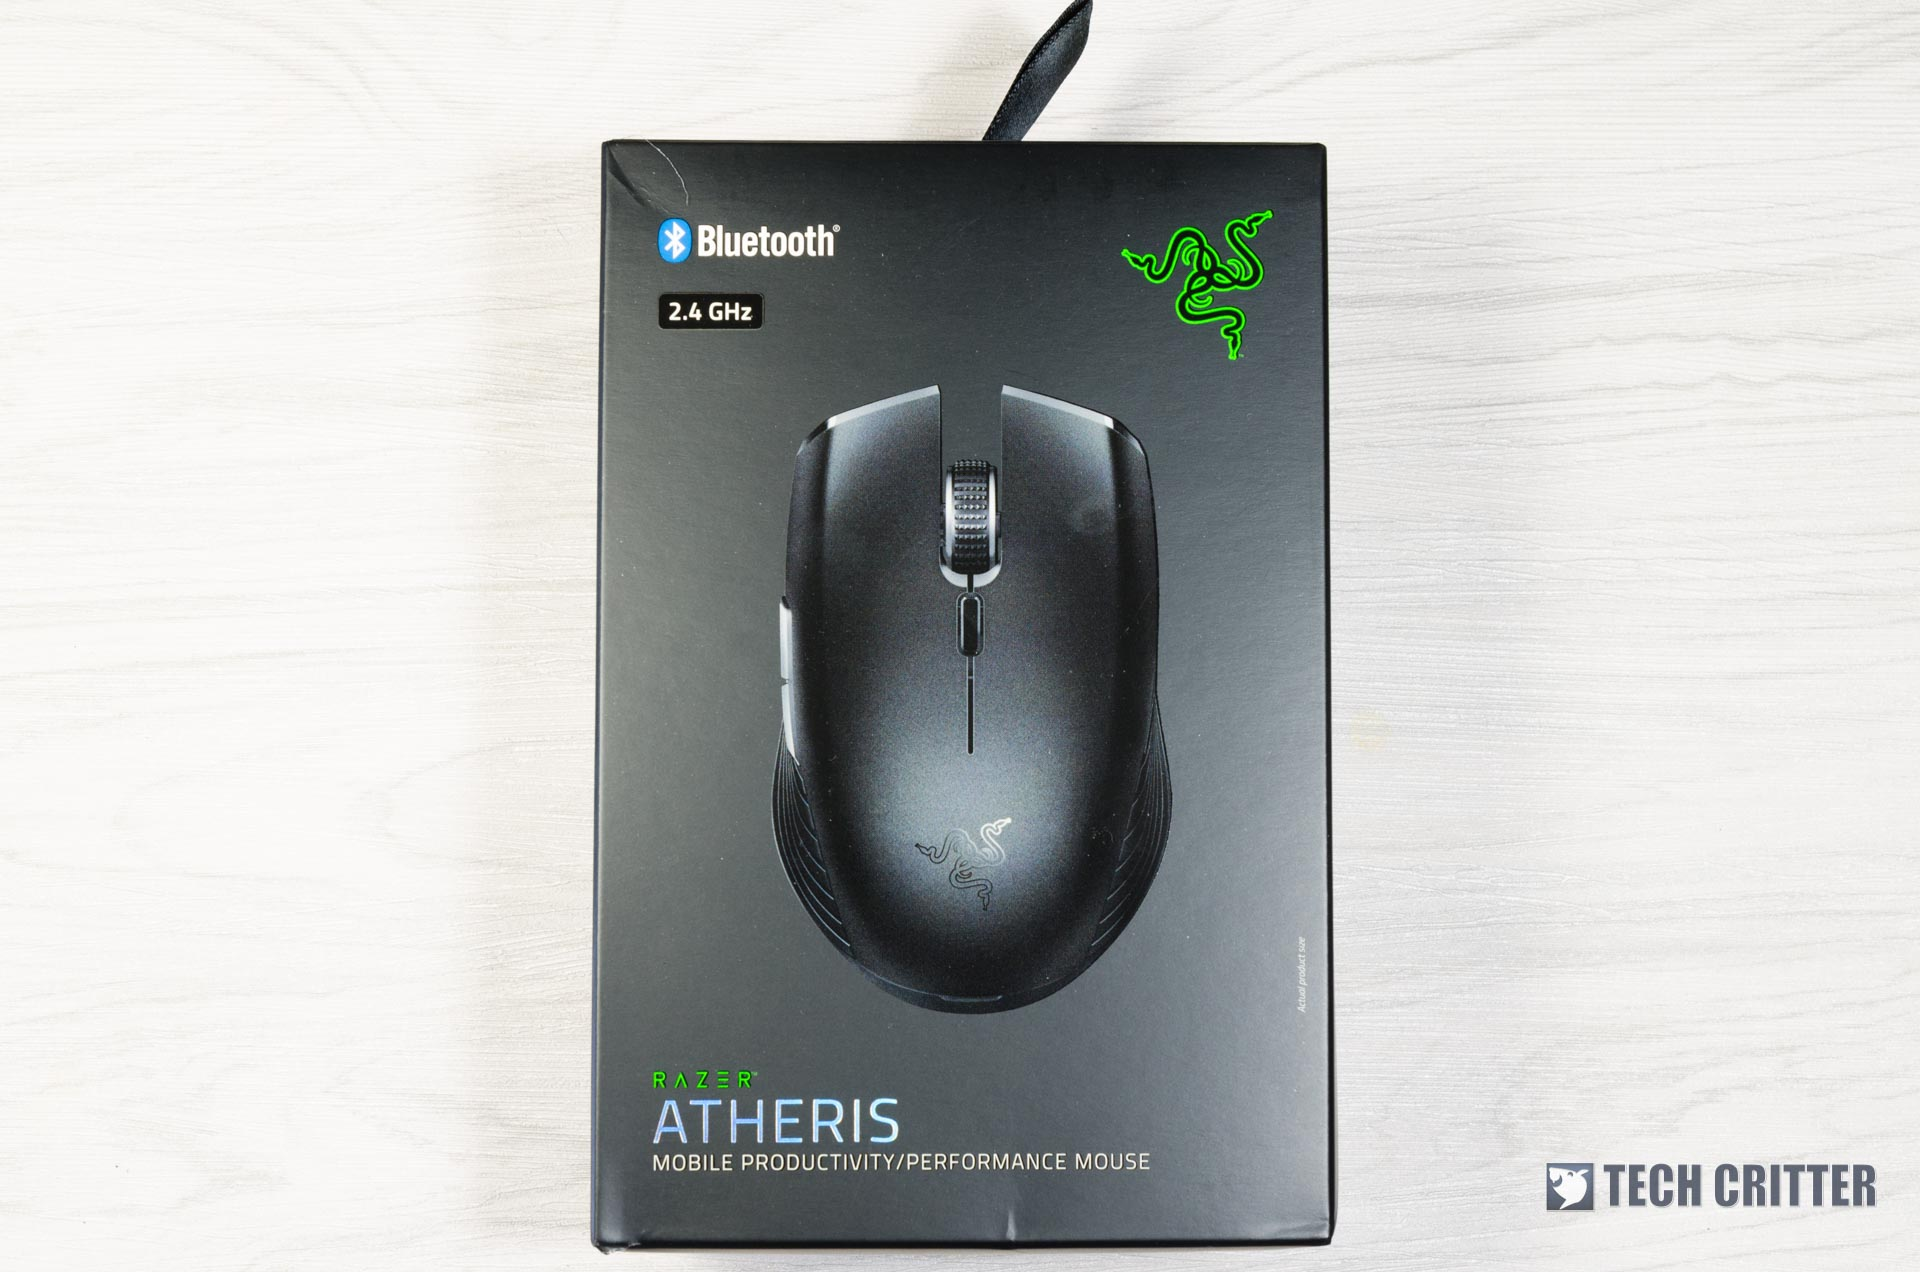 Review - Razer Atheris Wireless Mouse: For Work & Play